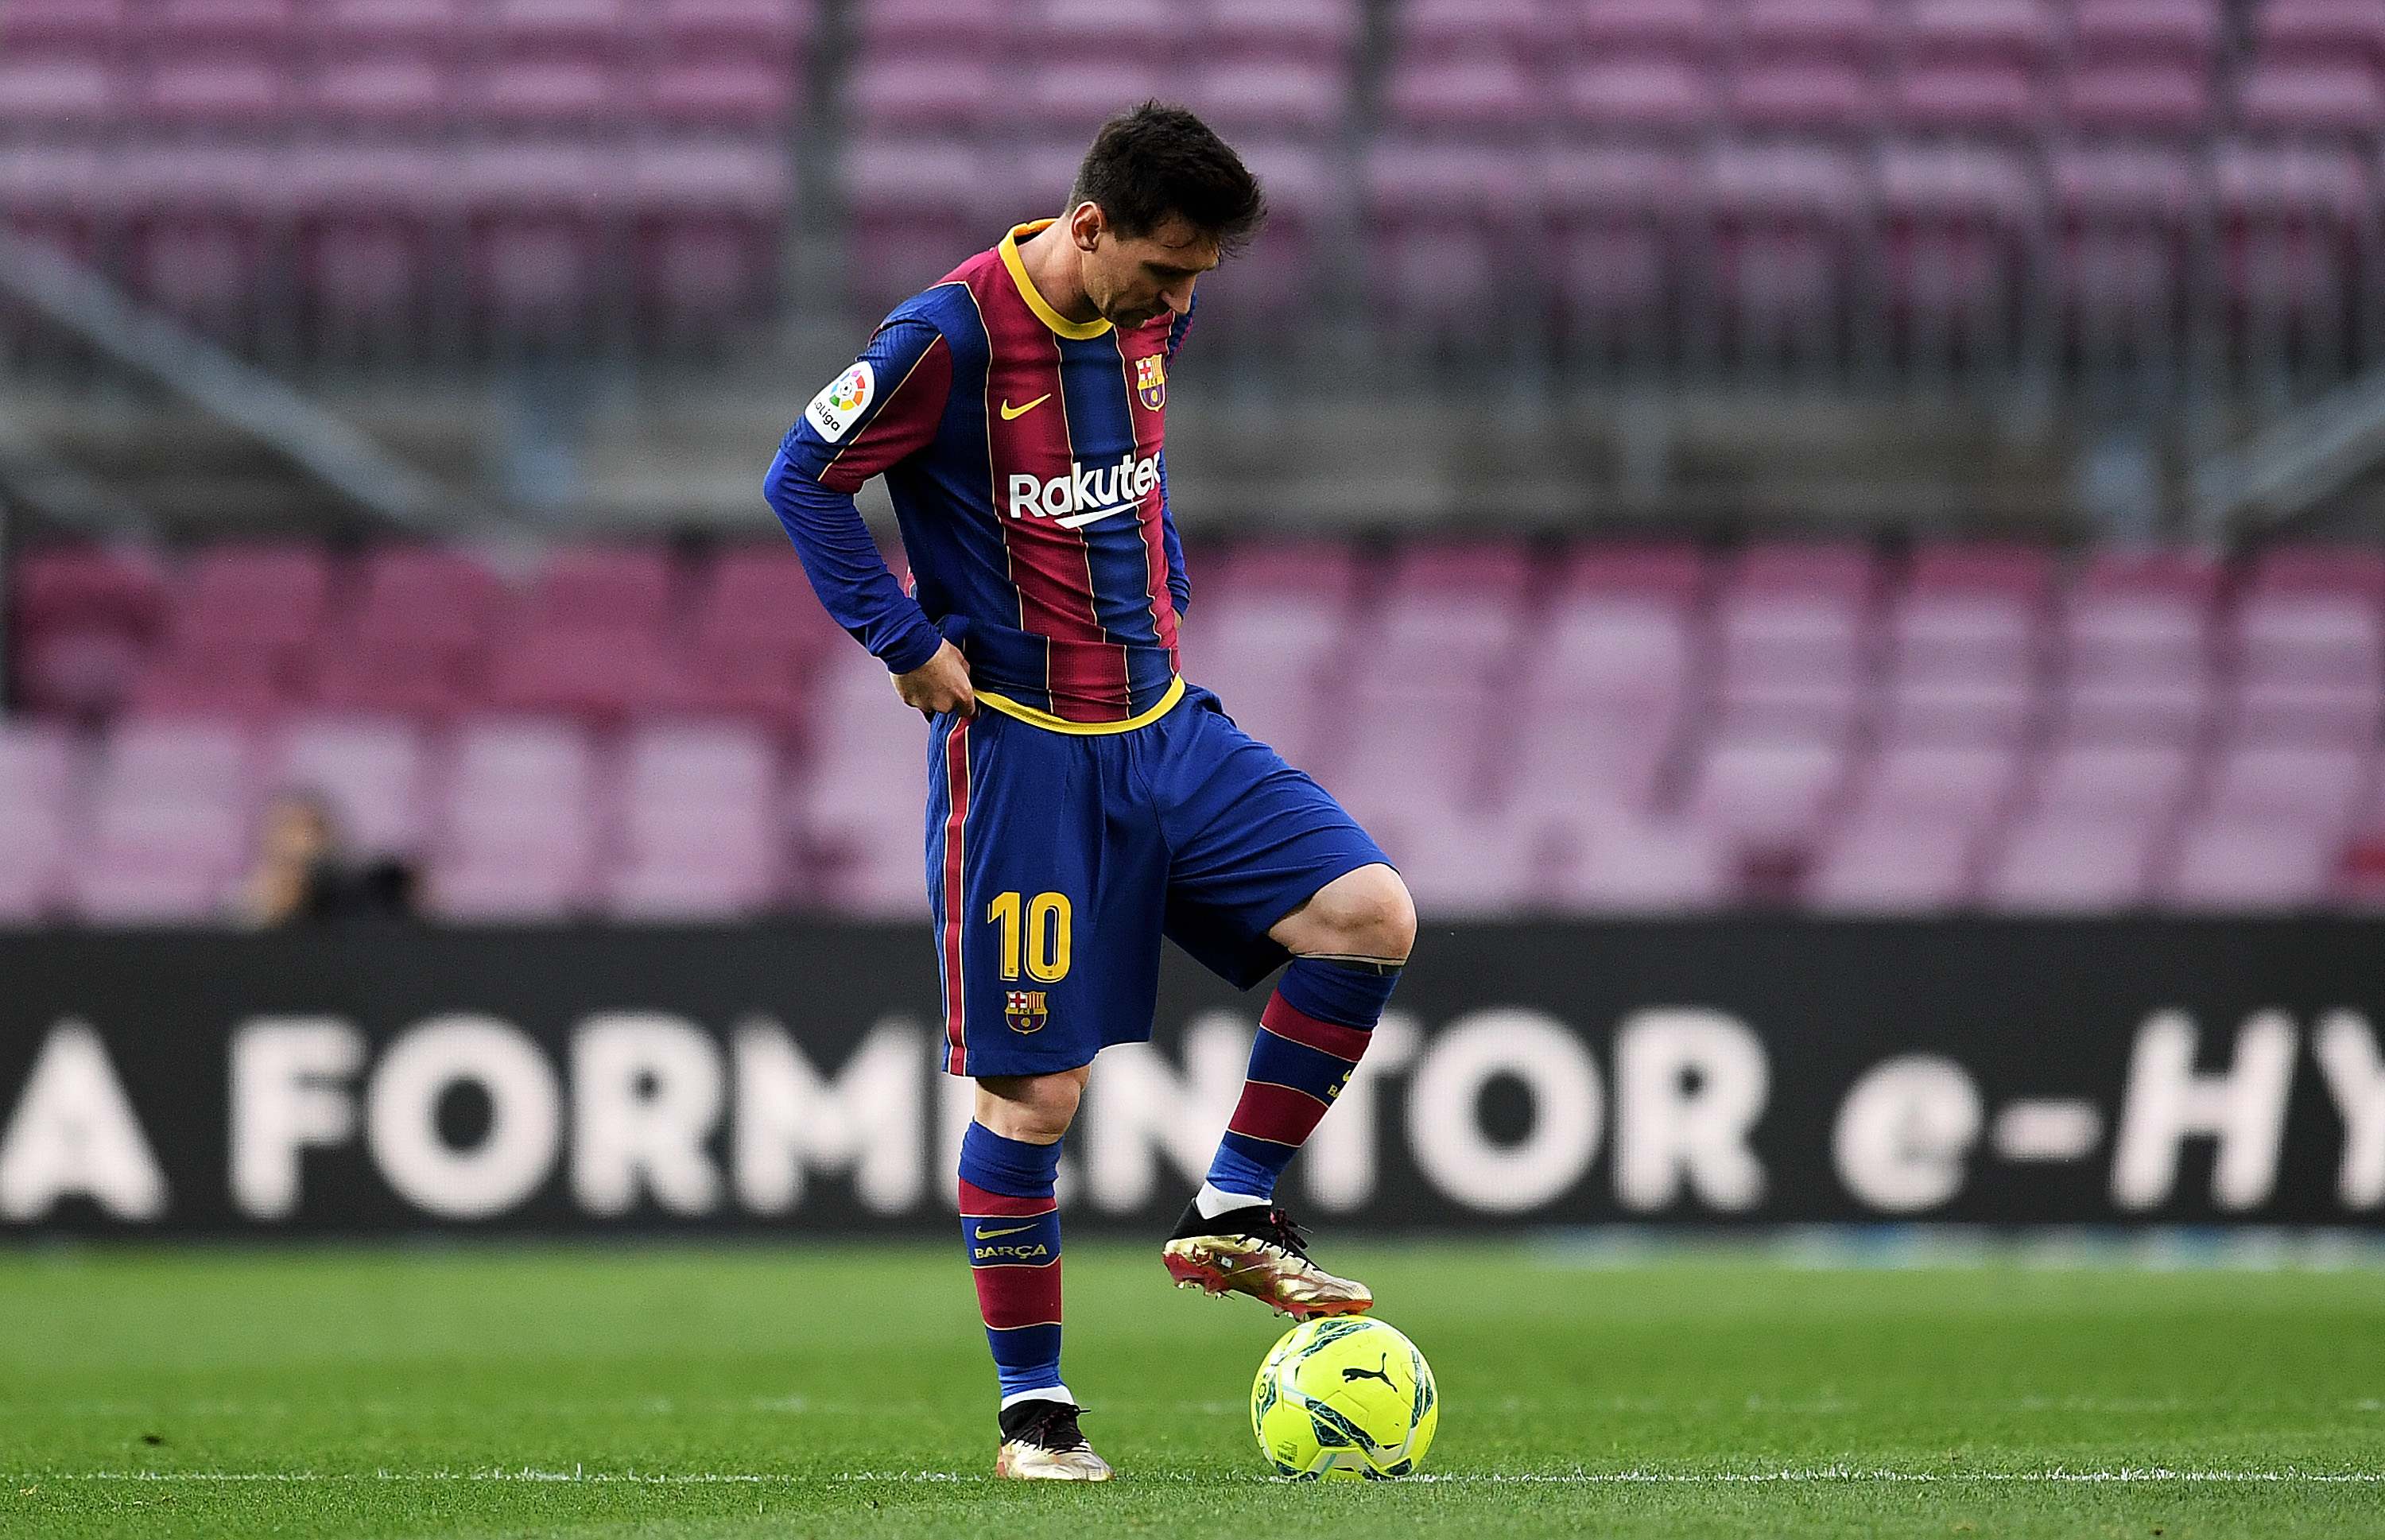 Lionel Messi Out for Barcelona Finale vs. Eibar to Rest Before Copa America